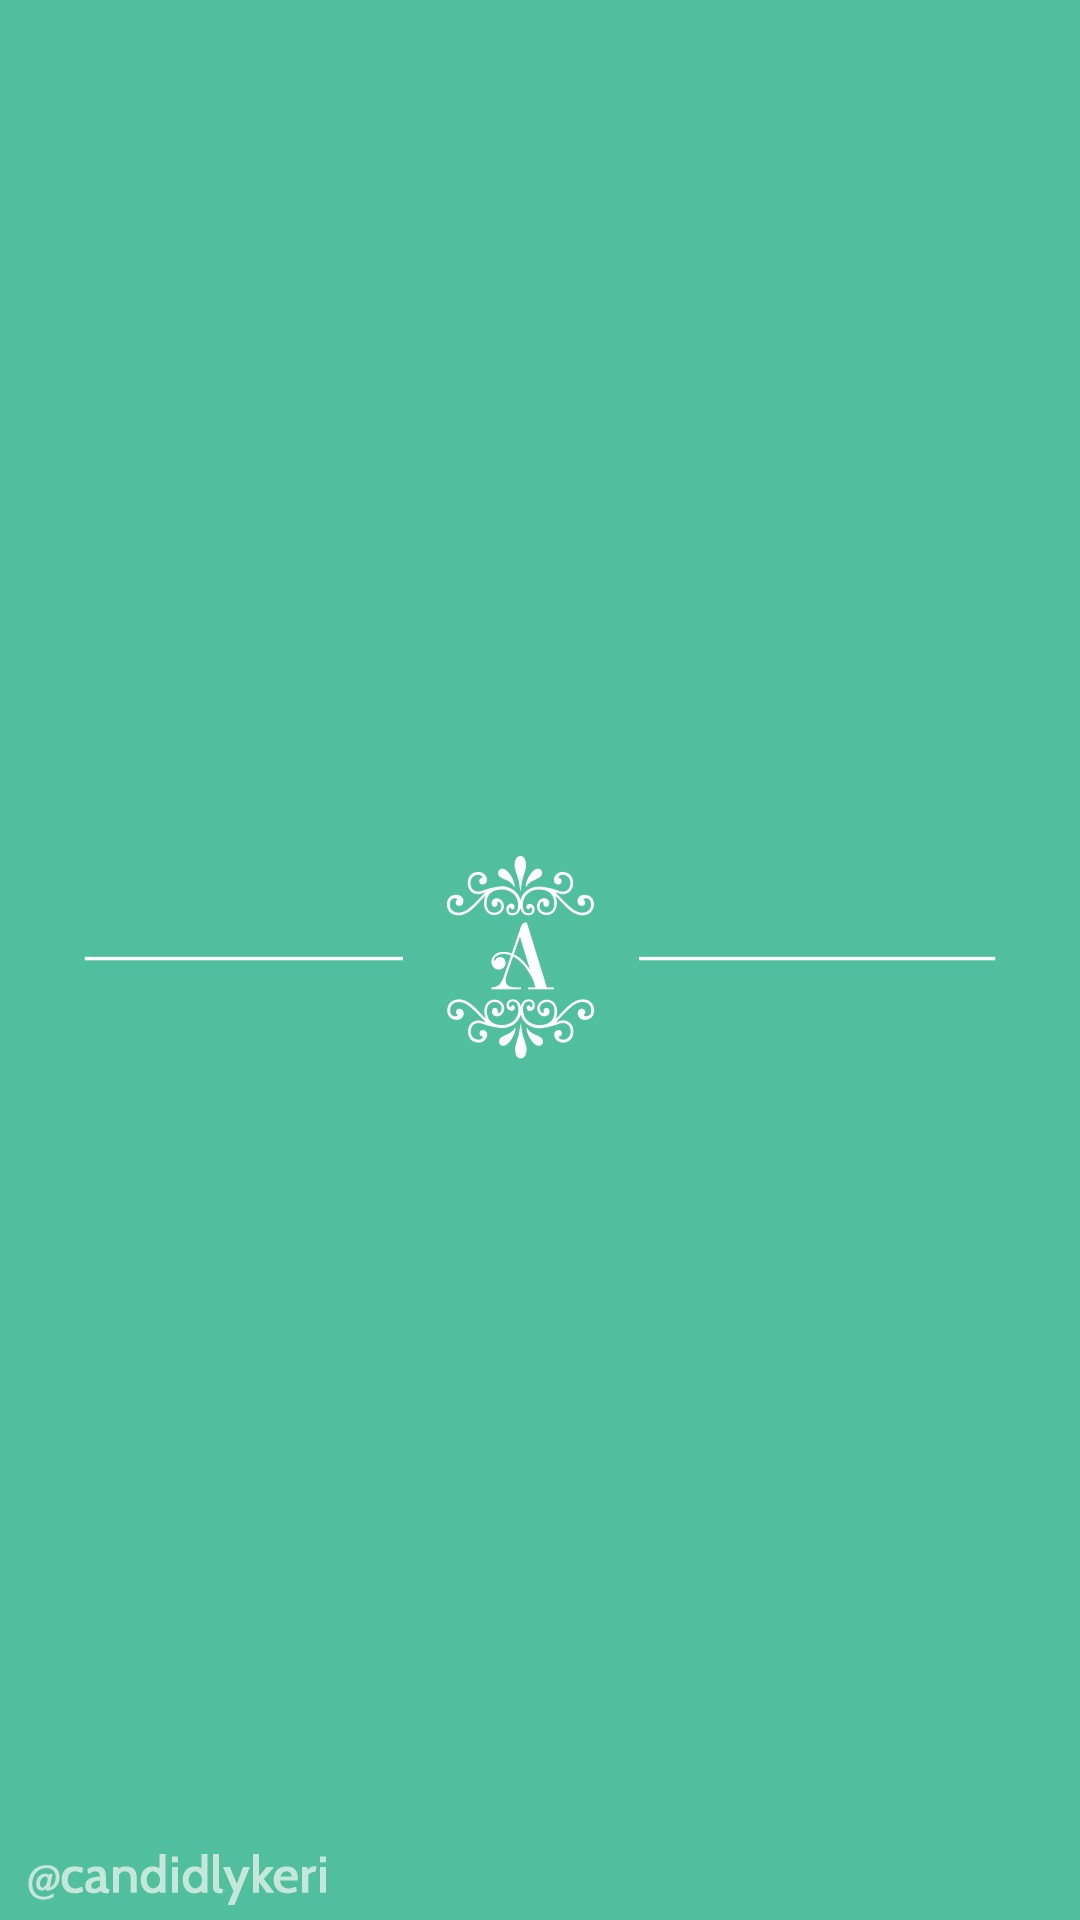 Free Monogram Wallpaper For Iphone Mint Green Wallpaper 183 ① Download Free Cool High Resolution